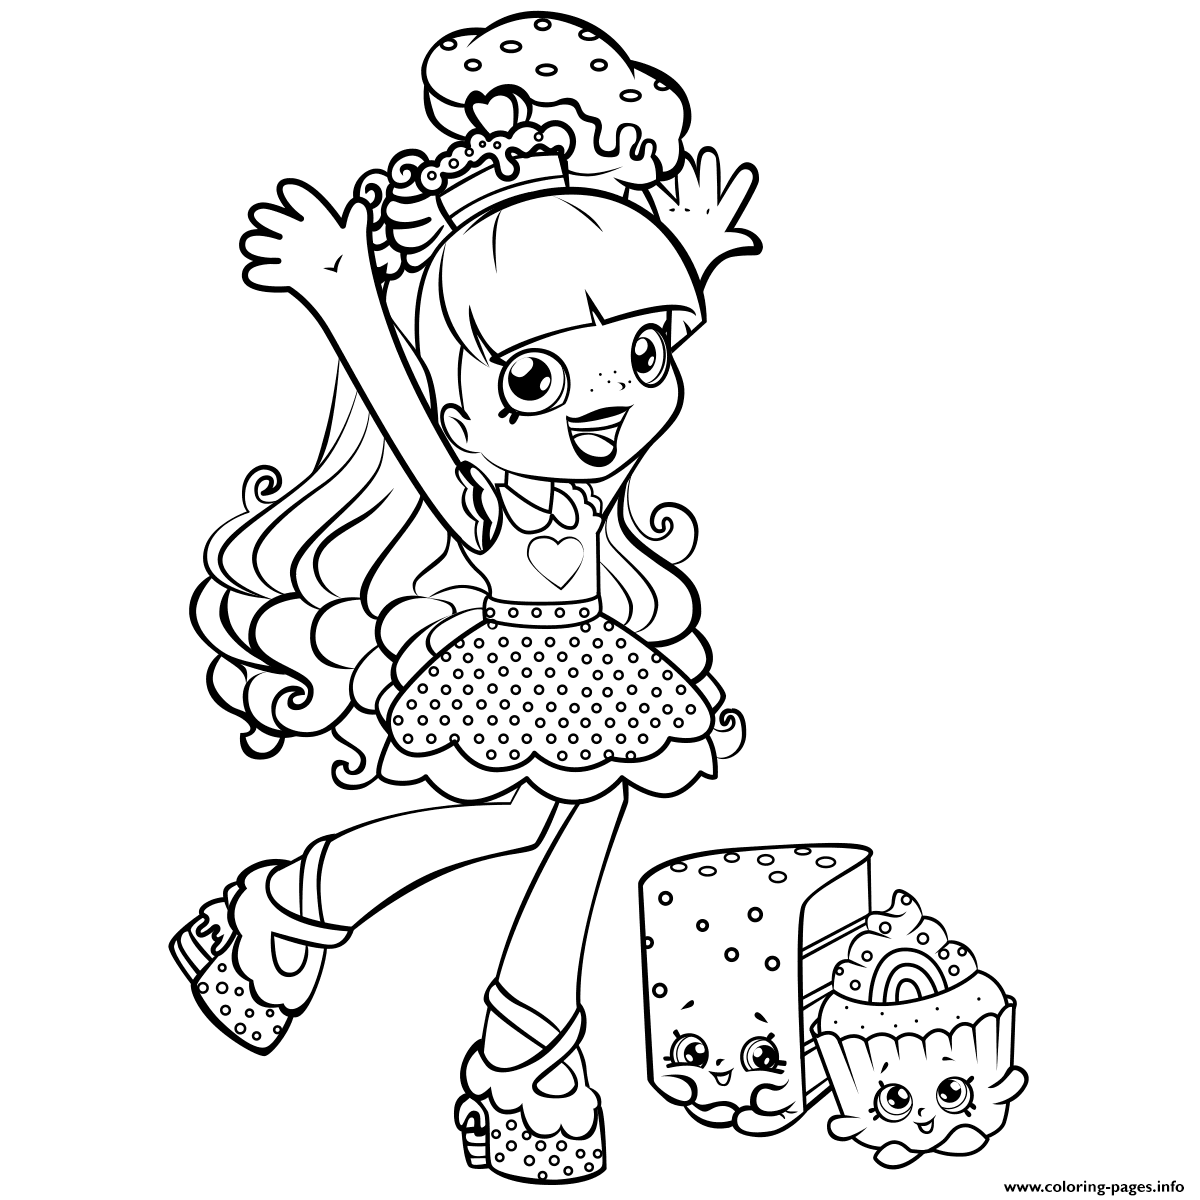 1474766544shopkins shoppies besides shopkins coloring pages free download printable on coloring pages shopkins further shopkins coloring pages getcoloringpages  on coloring pages shopkins along with shopkins coloring pages best coloring pages for kids on coloring pages shopkins further shopkins coloring pages best coloring pages for kids on coloring pages shopkins